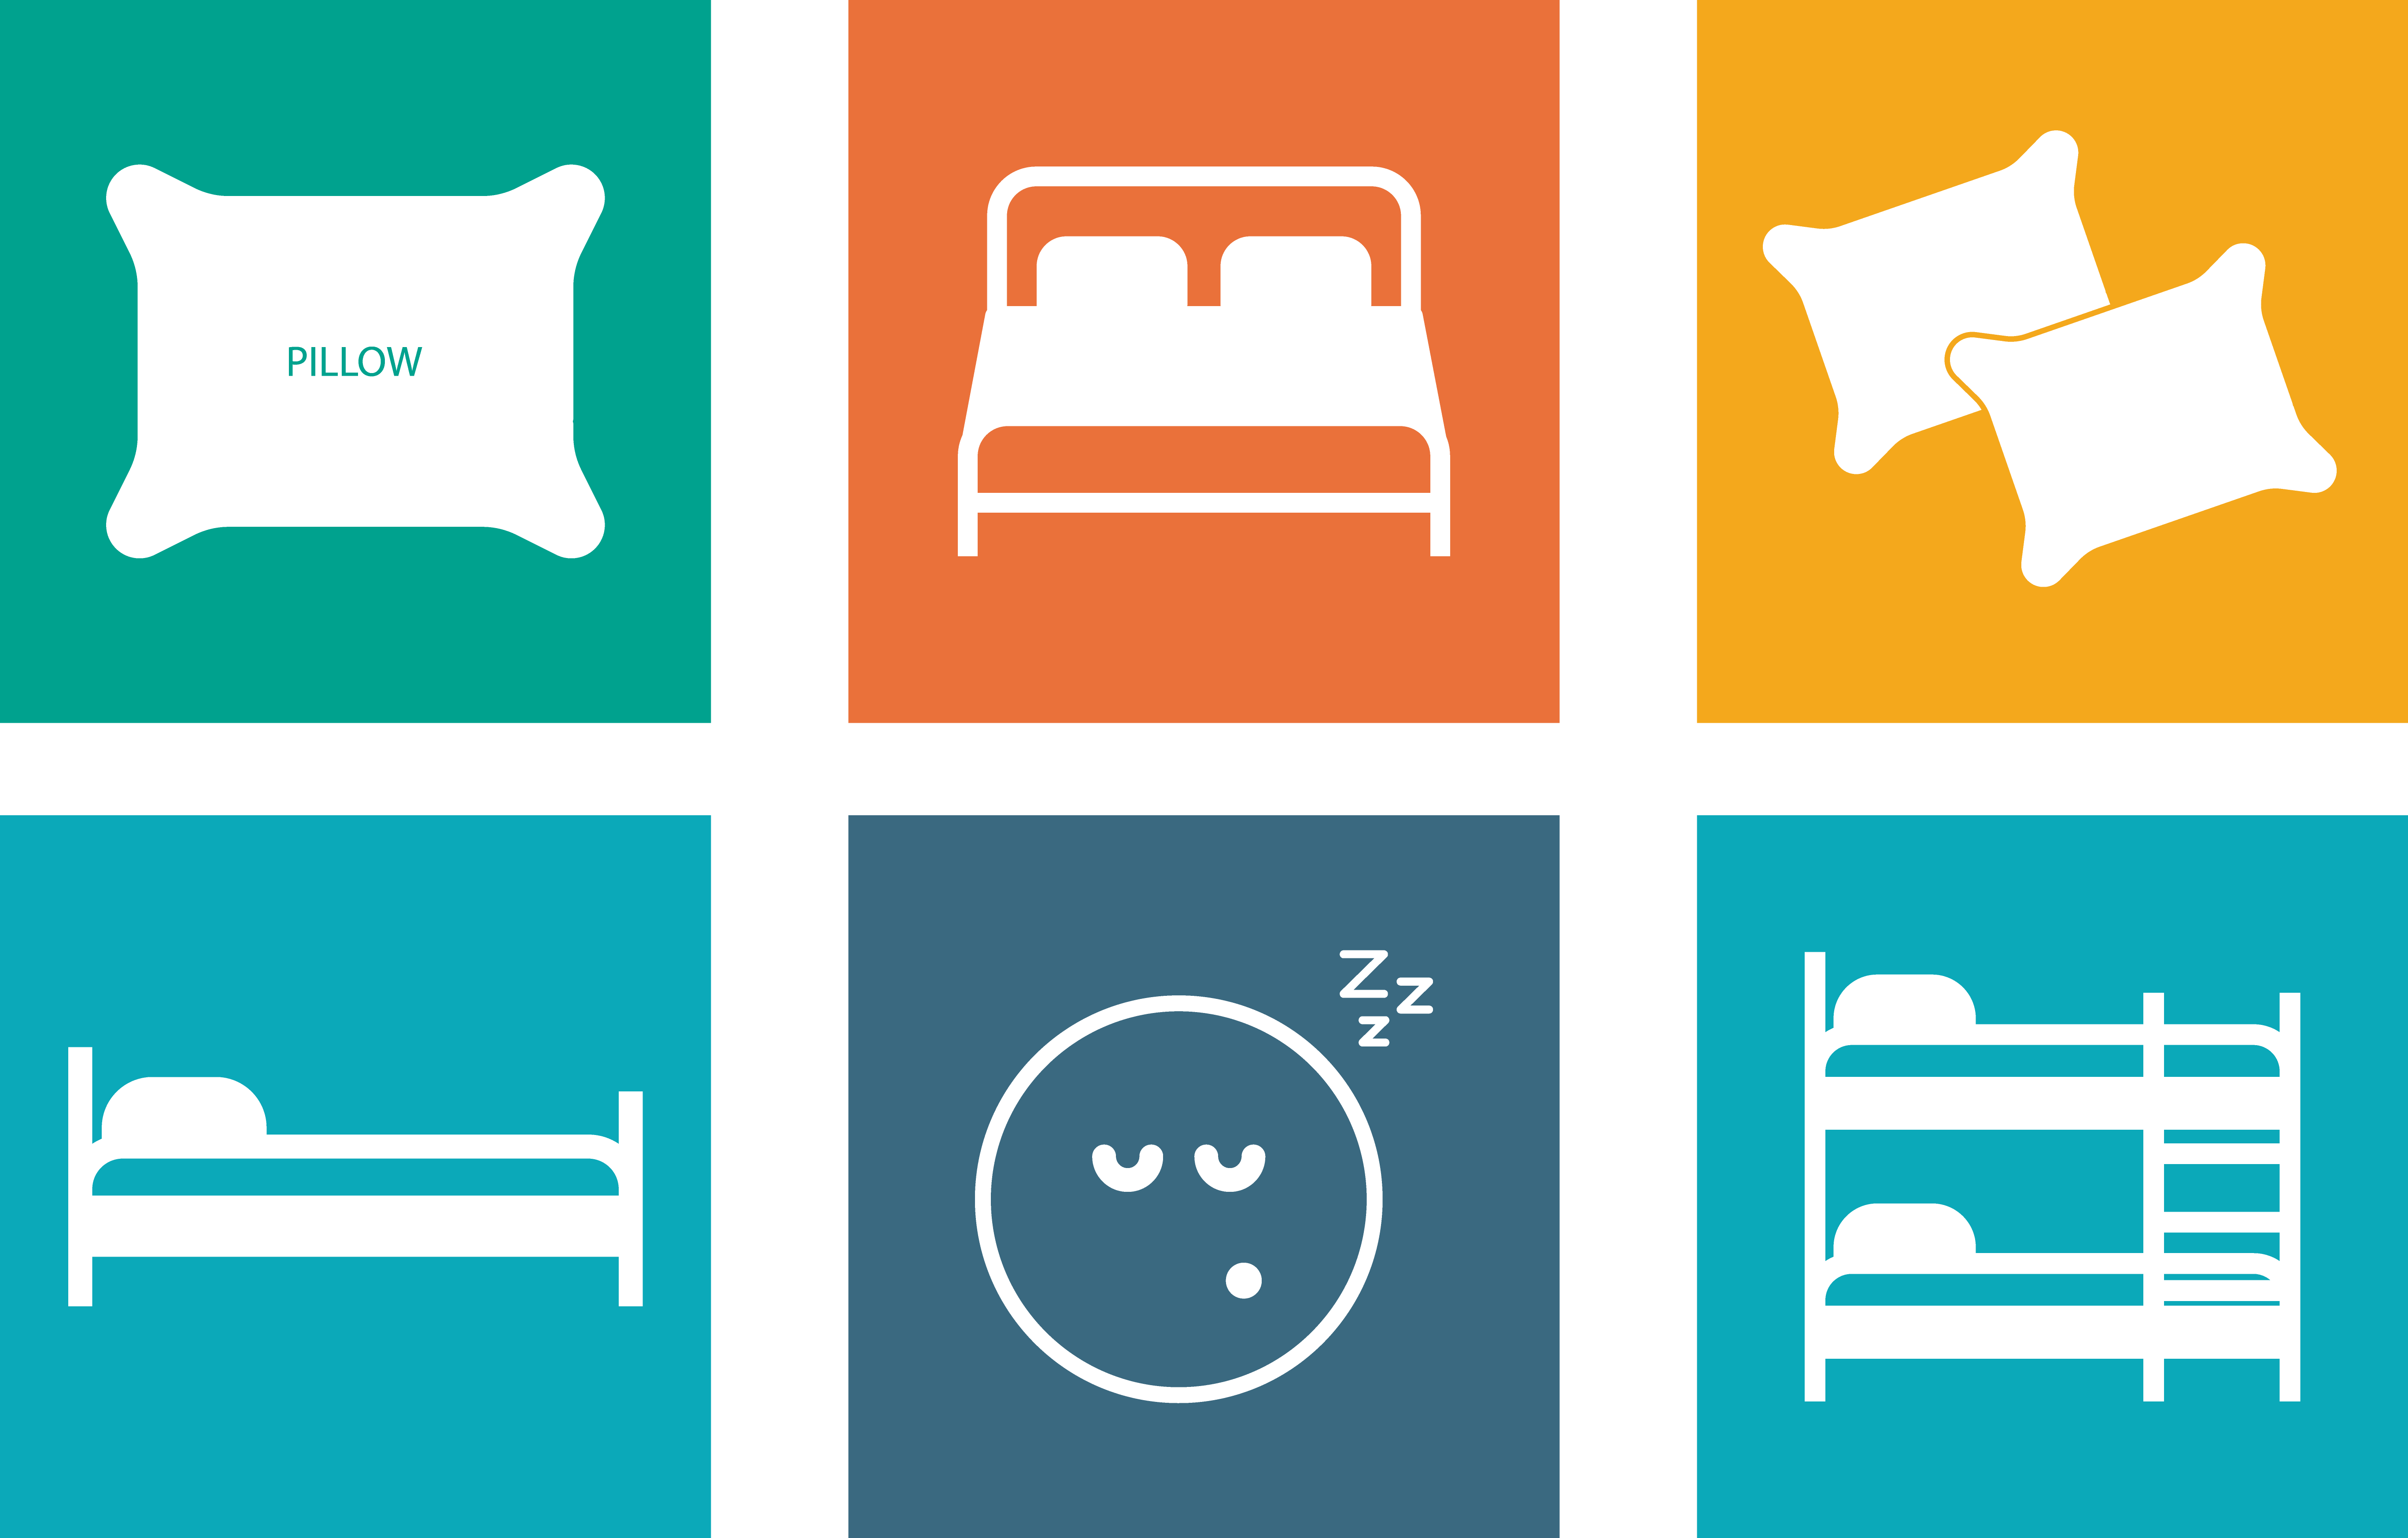 Bedding icon picture collection. Clipart bed blanket pillow